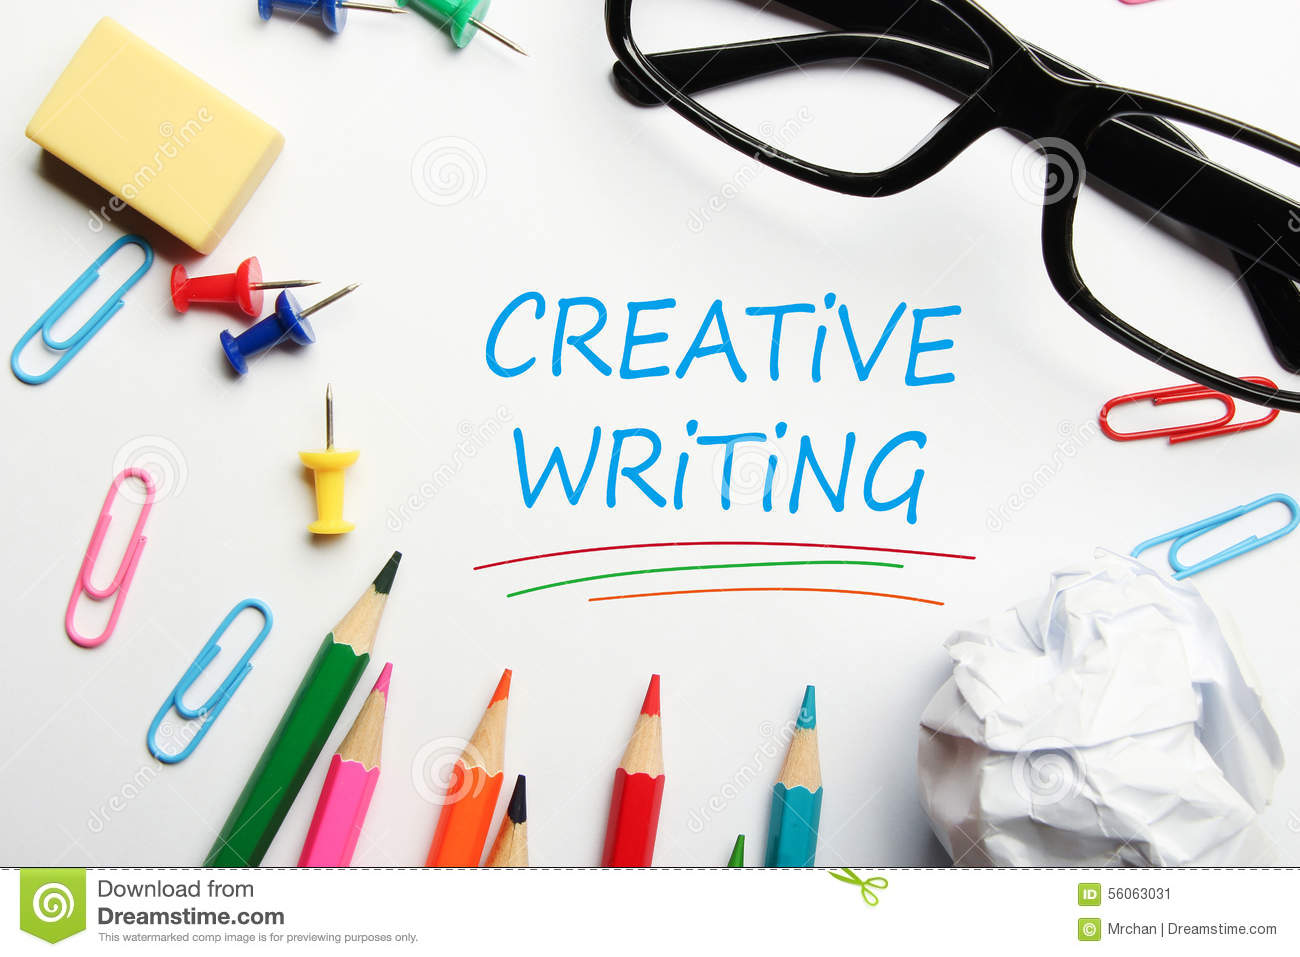 creative writing coursera Creative writing: the craft of style is course 4 of 5 in the creative writing specialisation this specialization covers elements of three major creative writing.